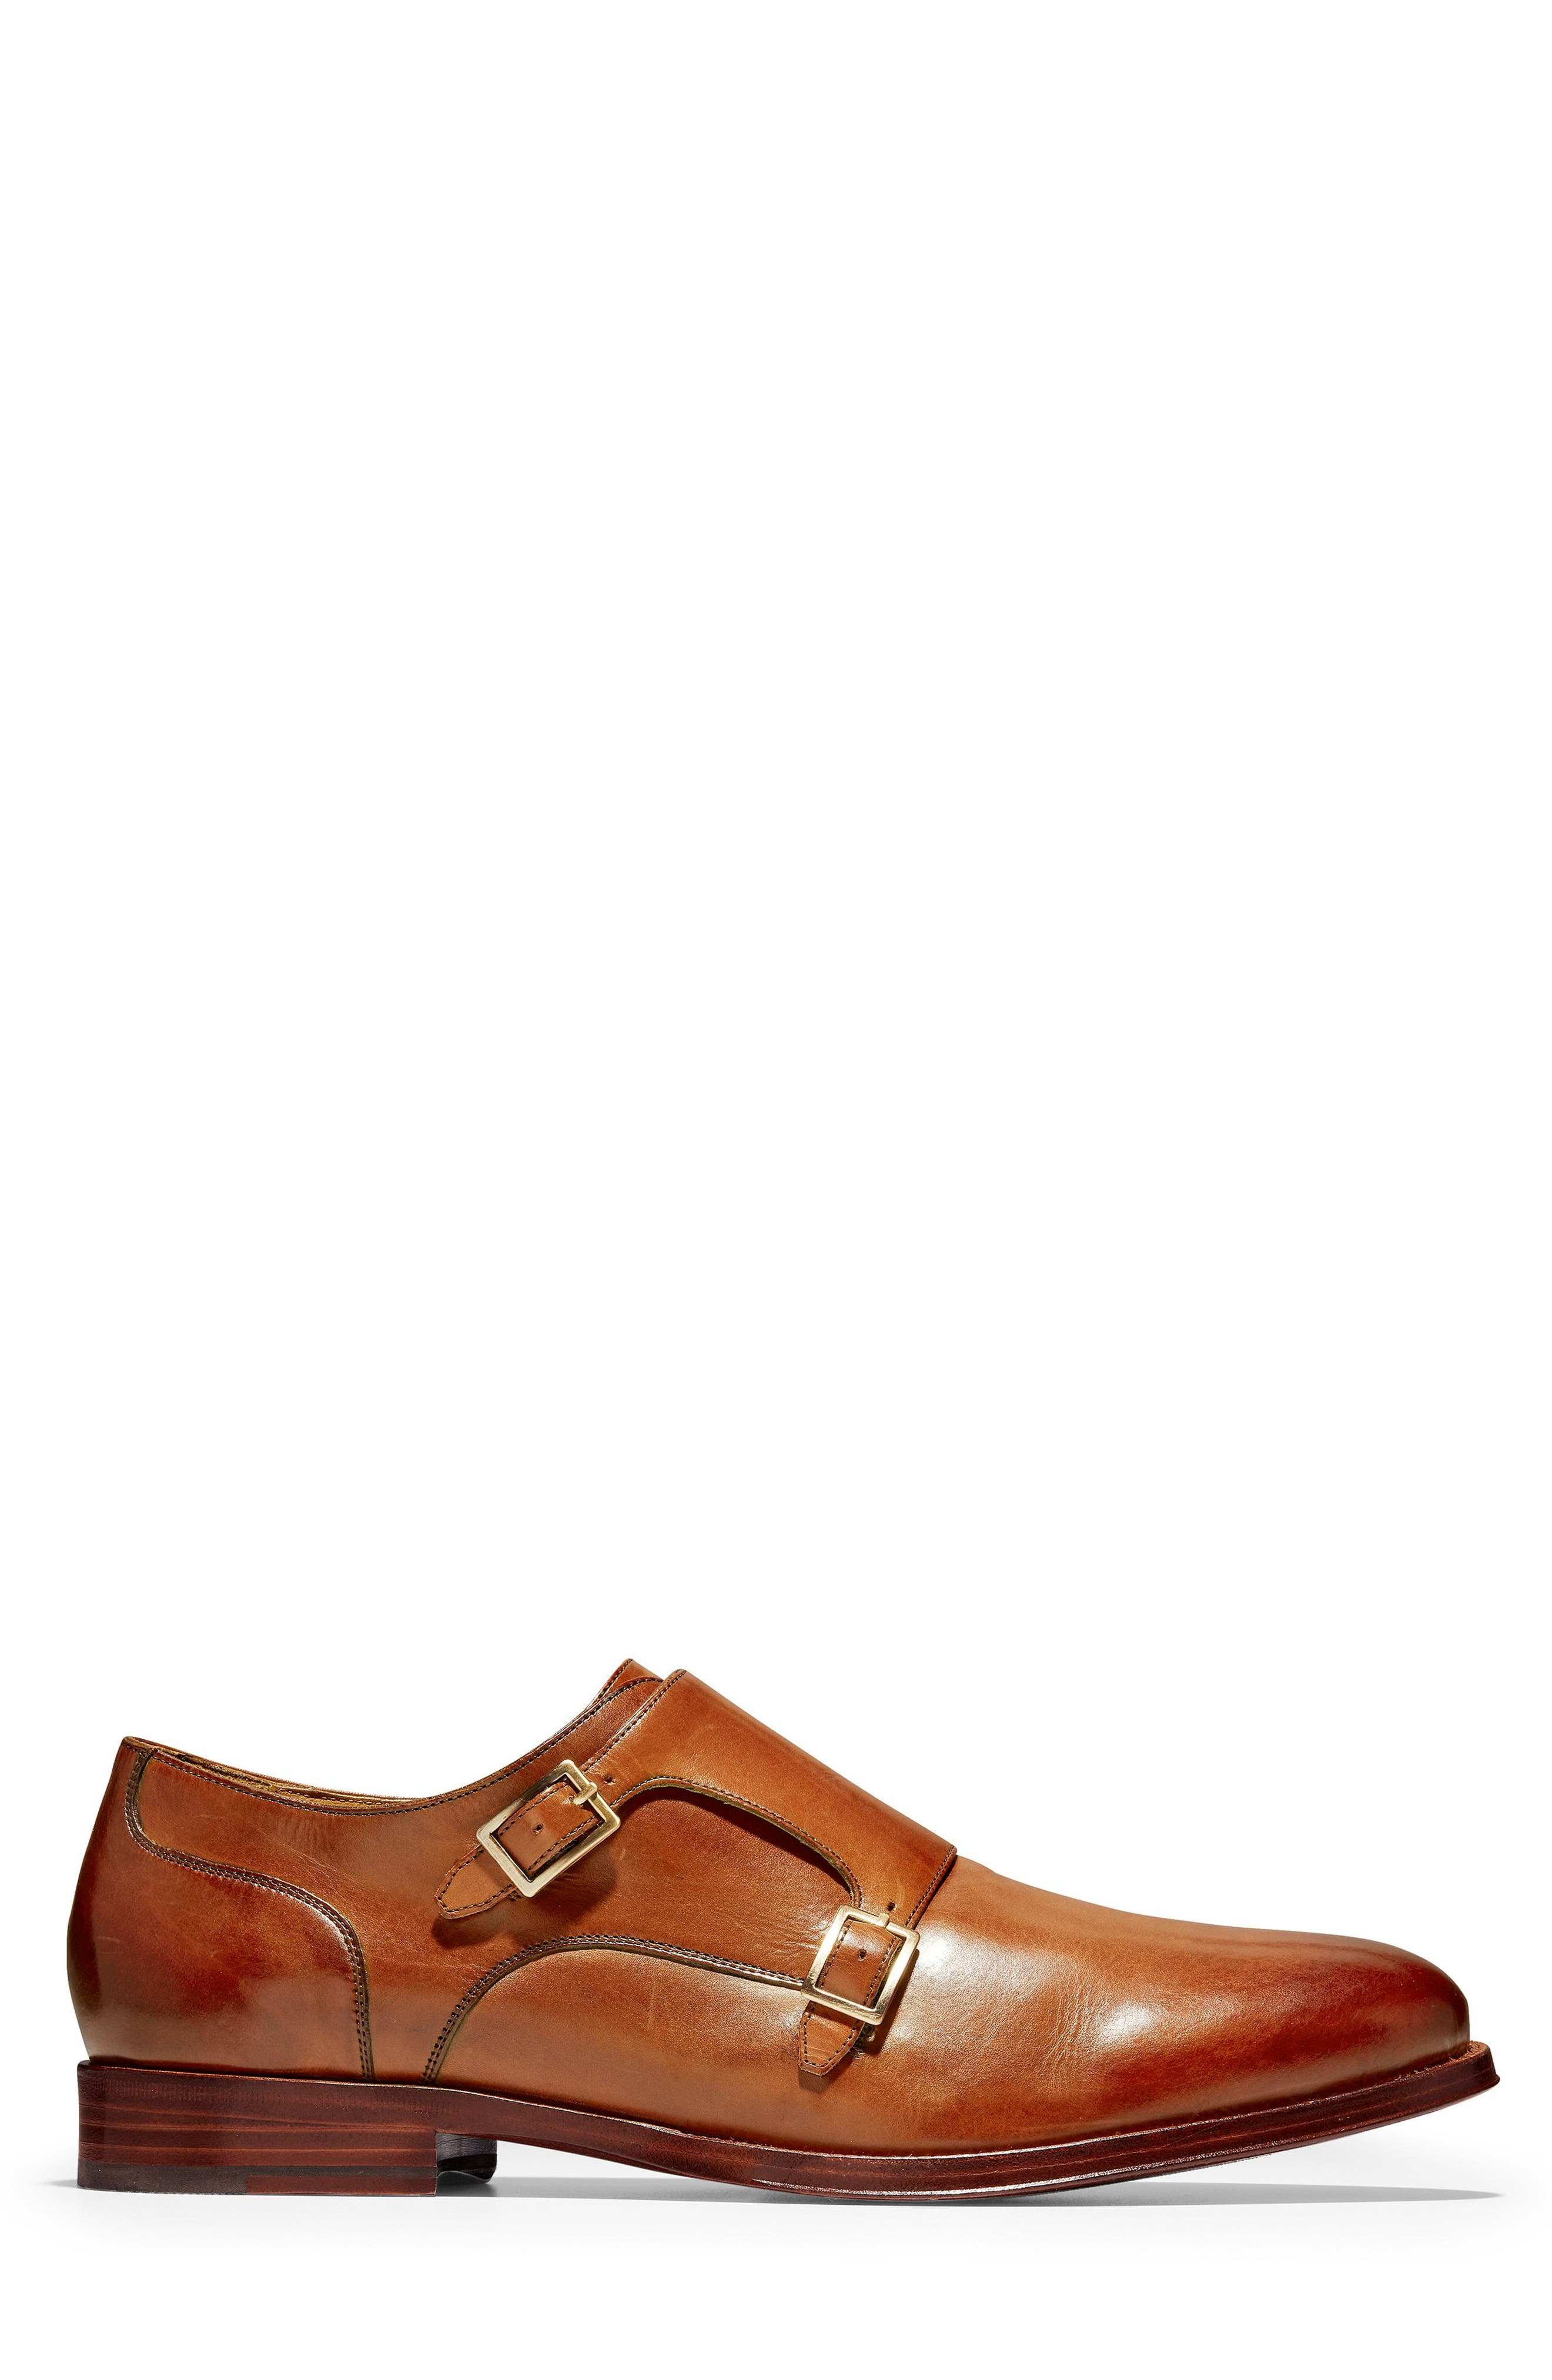 COLE HAAN, American Classics Gramercy Double Strap Monk Shoe, Alternate thumbnail 3, color, BRITISH TAN LEATHER